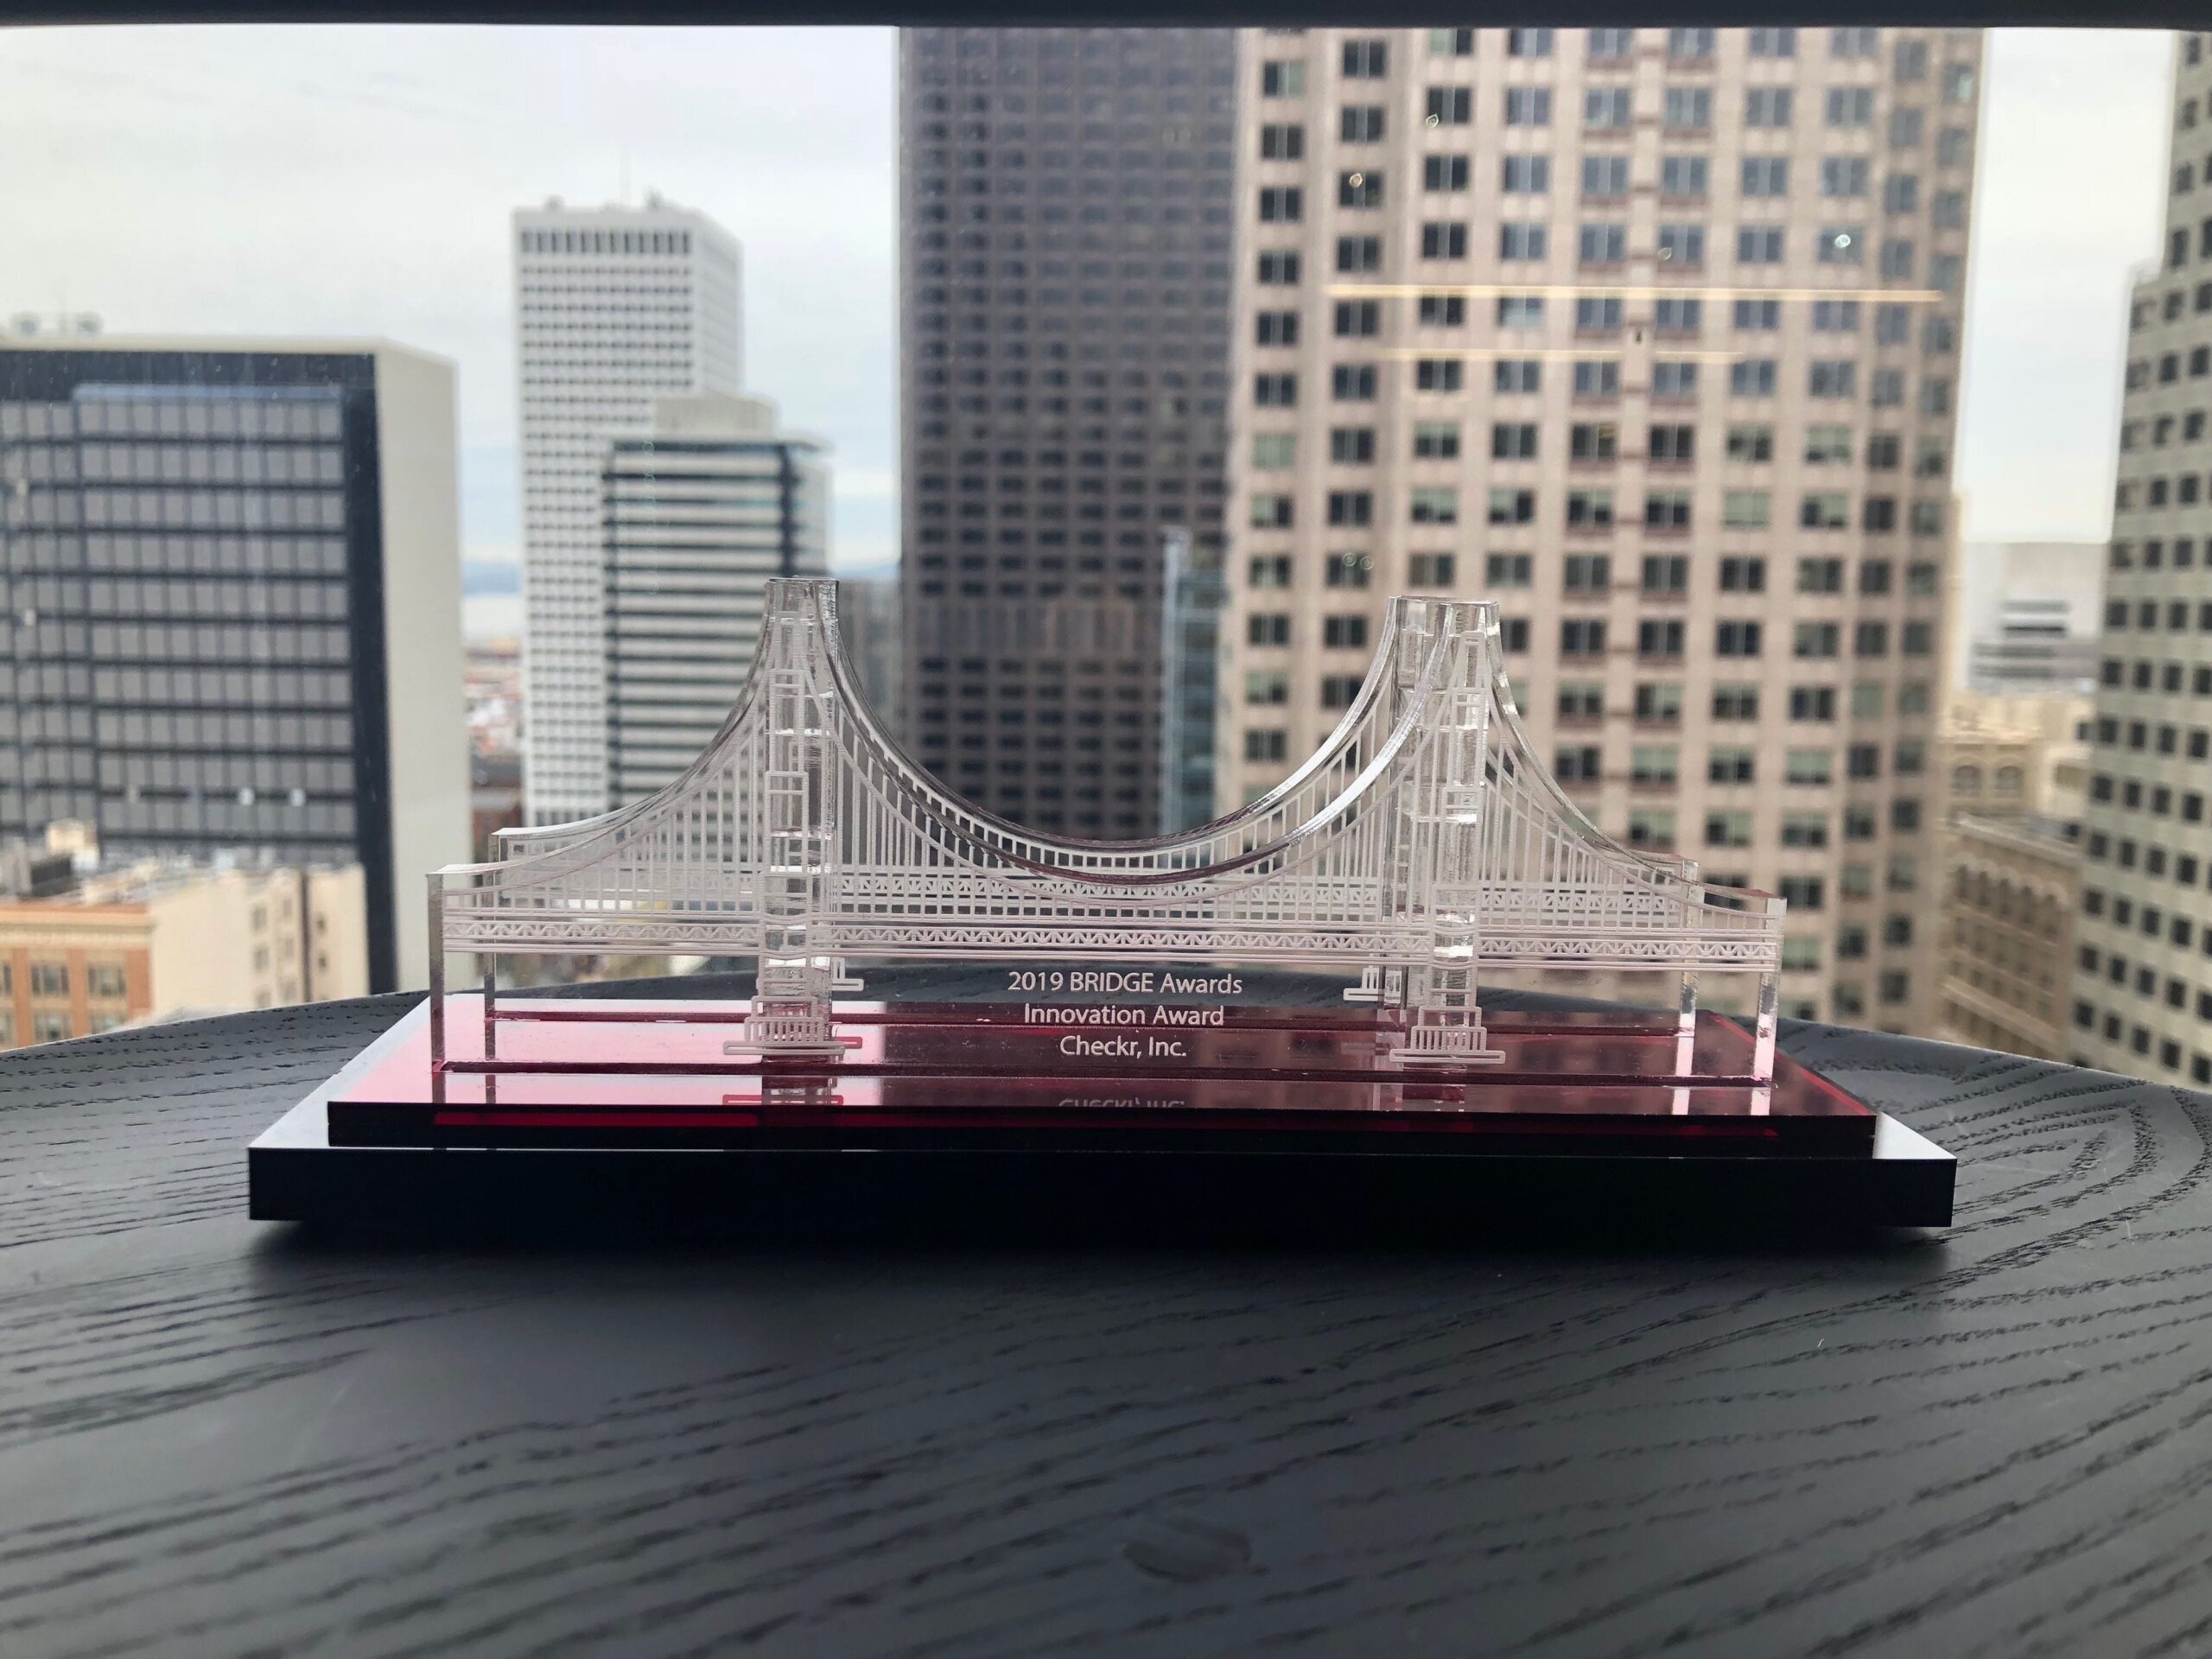 Checkr Named 2019 Bridge Award Winner